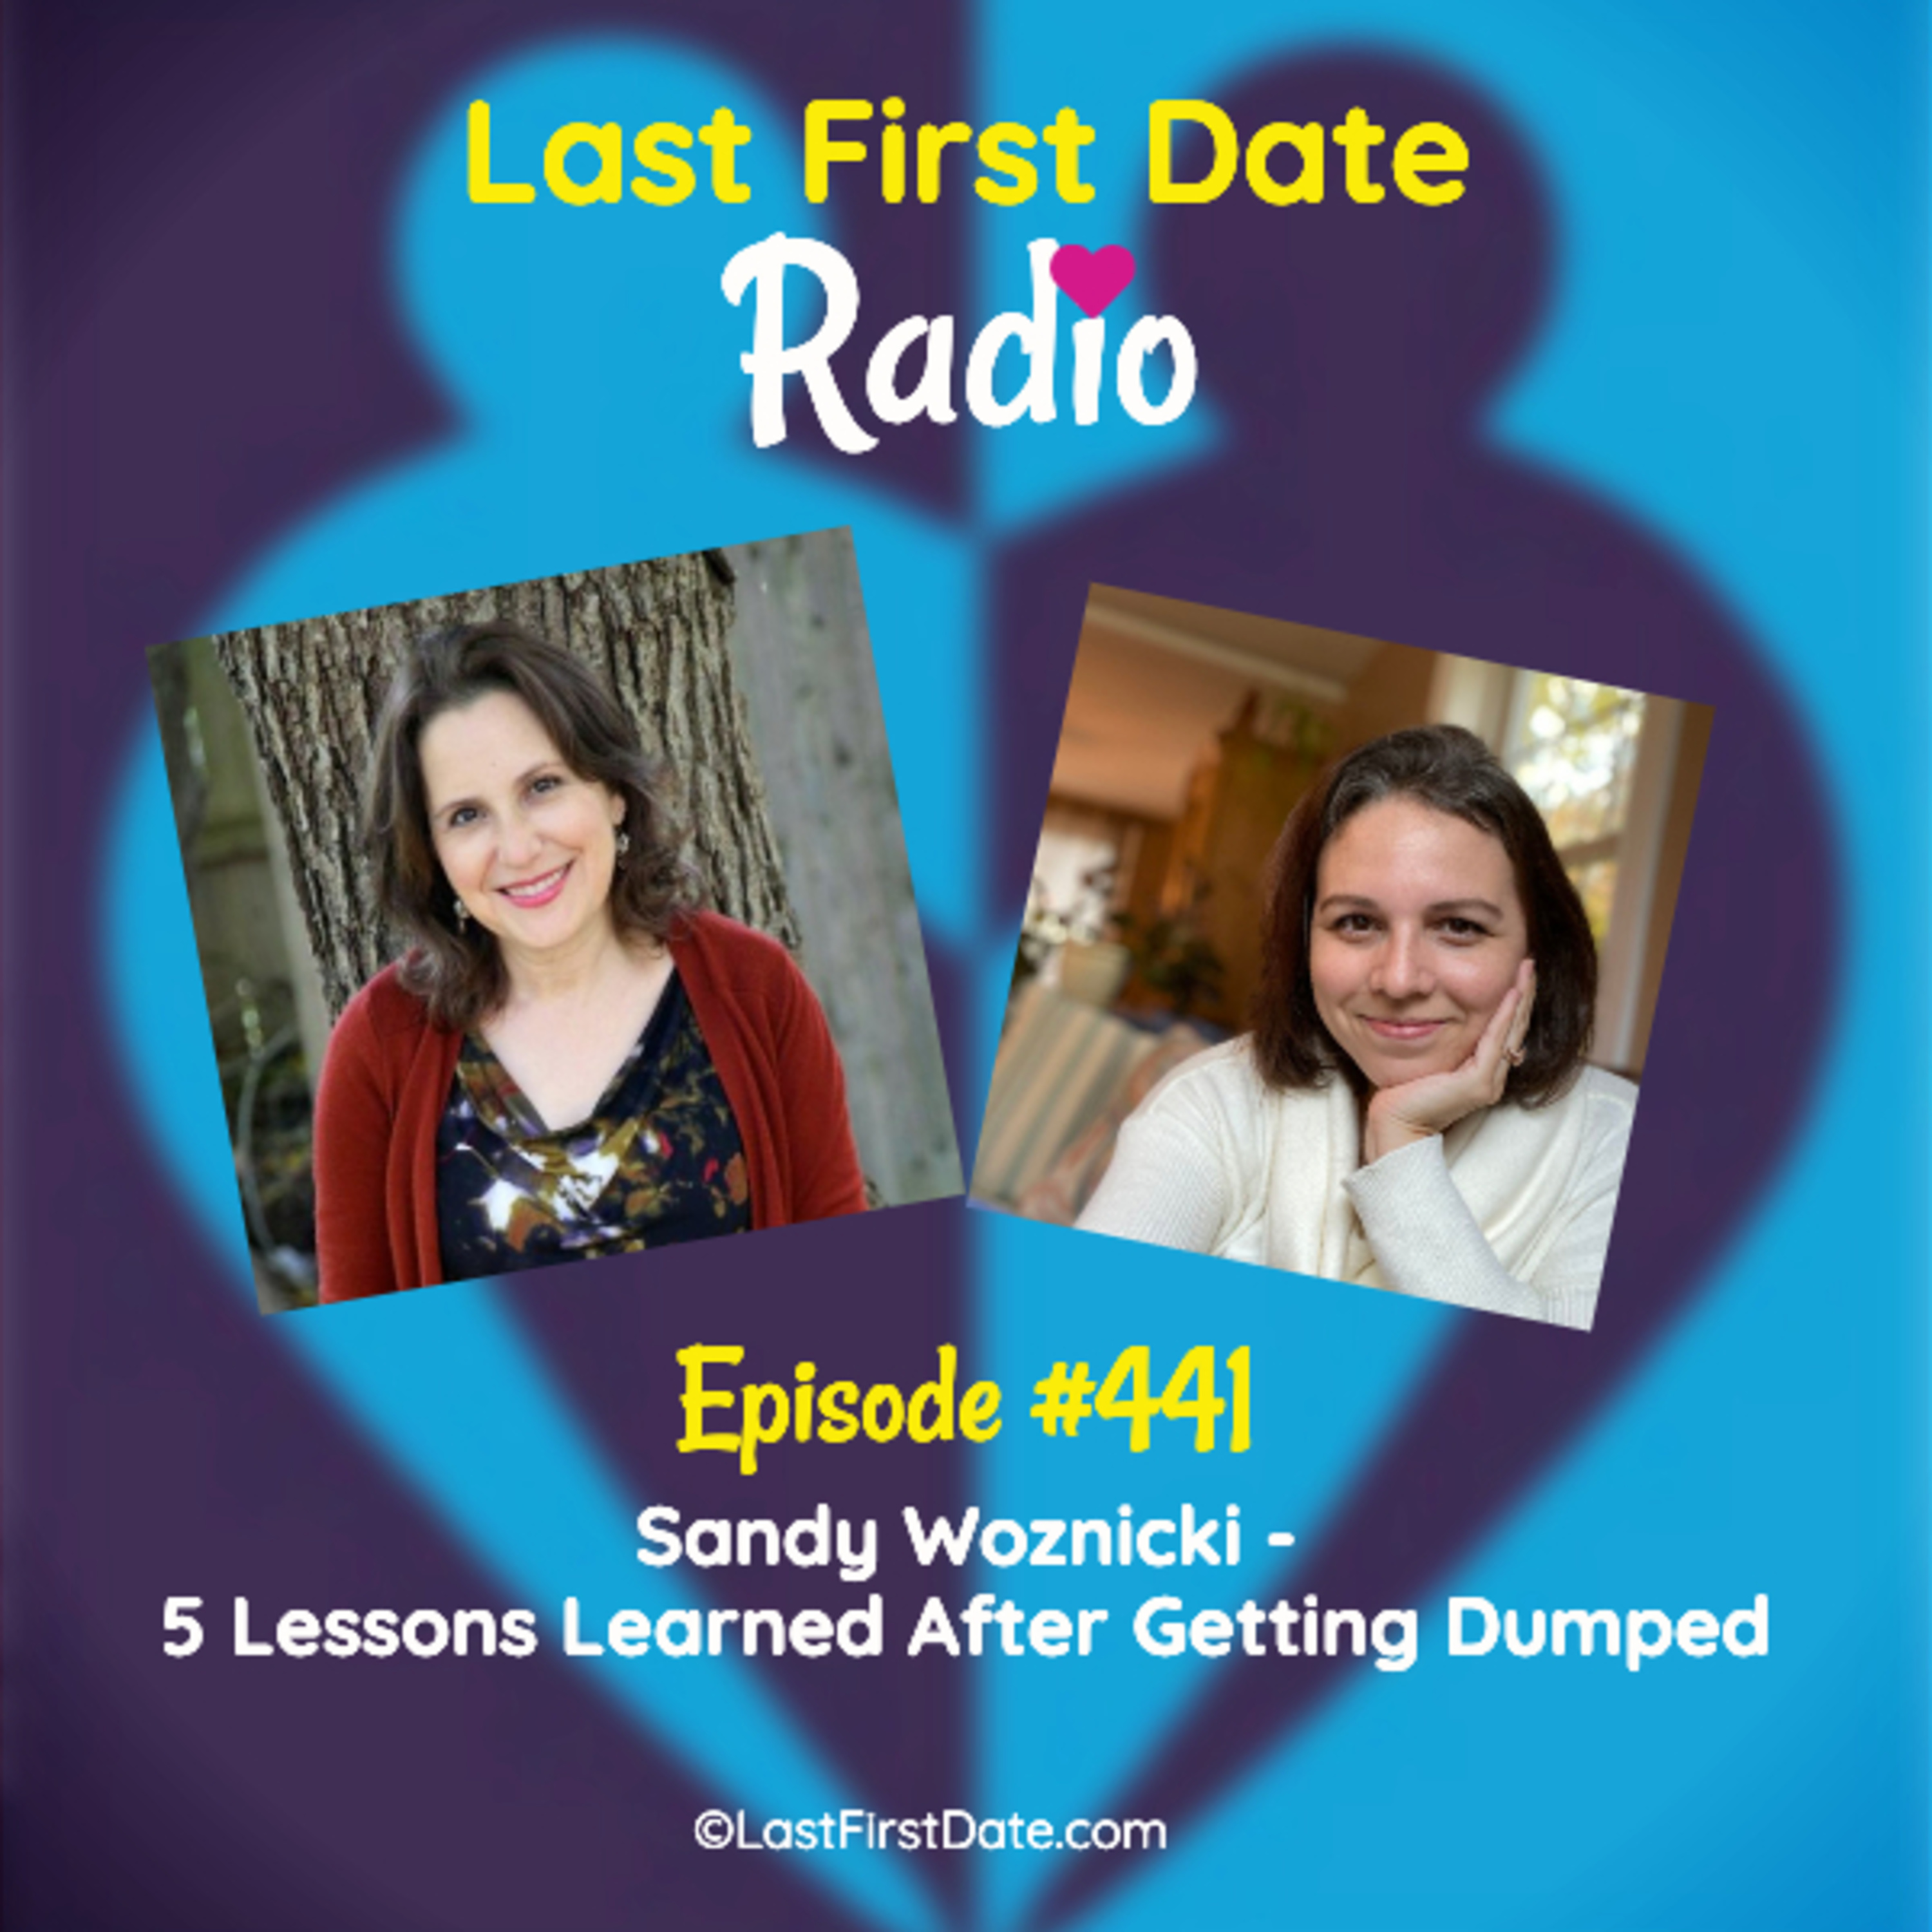 Last First Date Radio - EP 441: Sandy Woznicki - 5 Lessons Learned After Getting Dumped